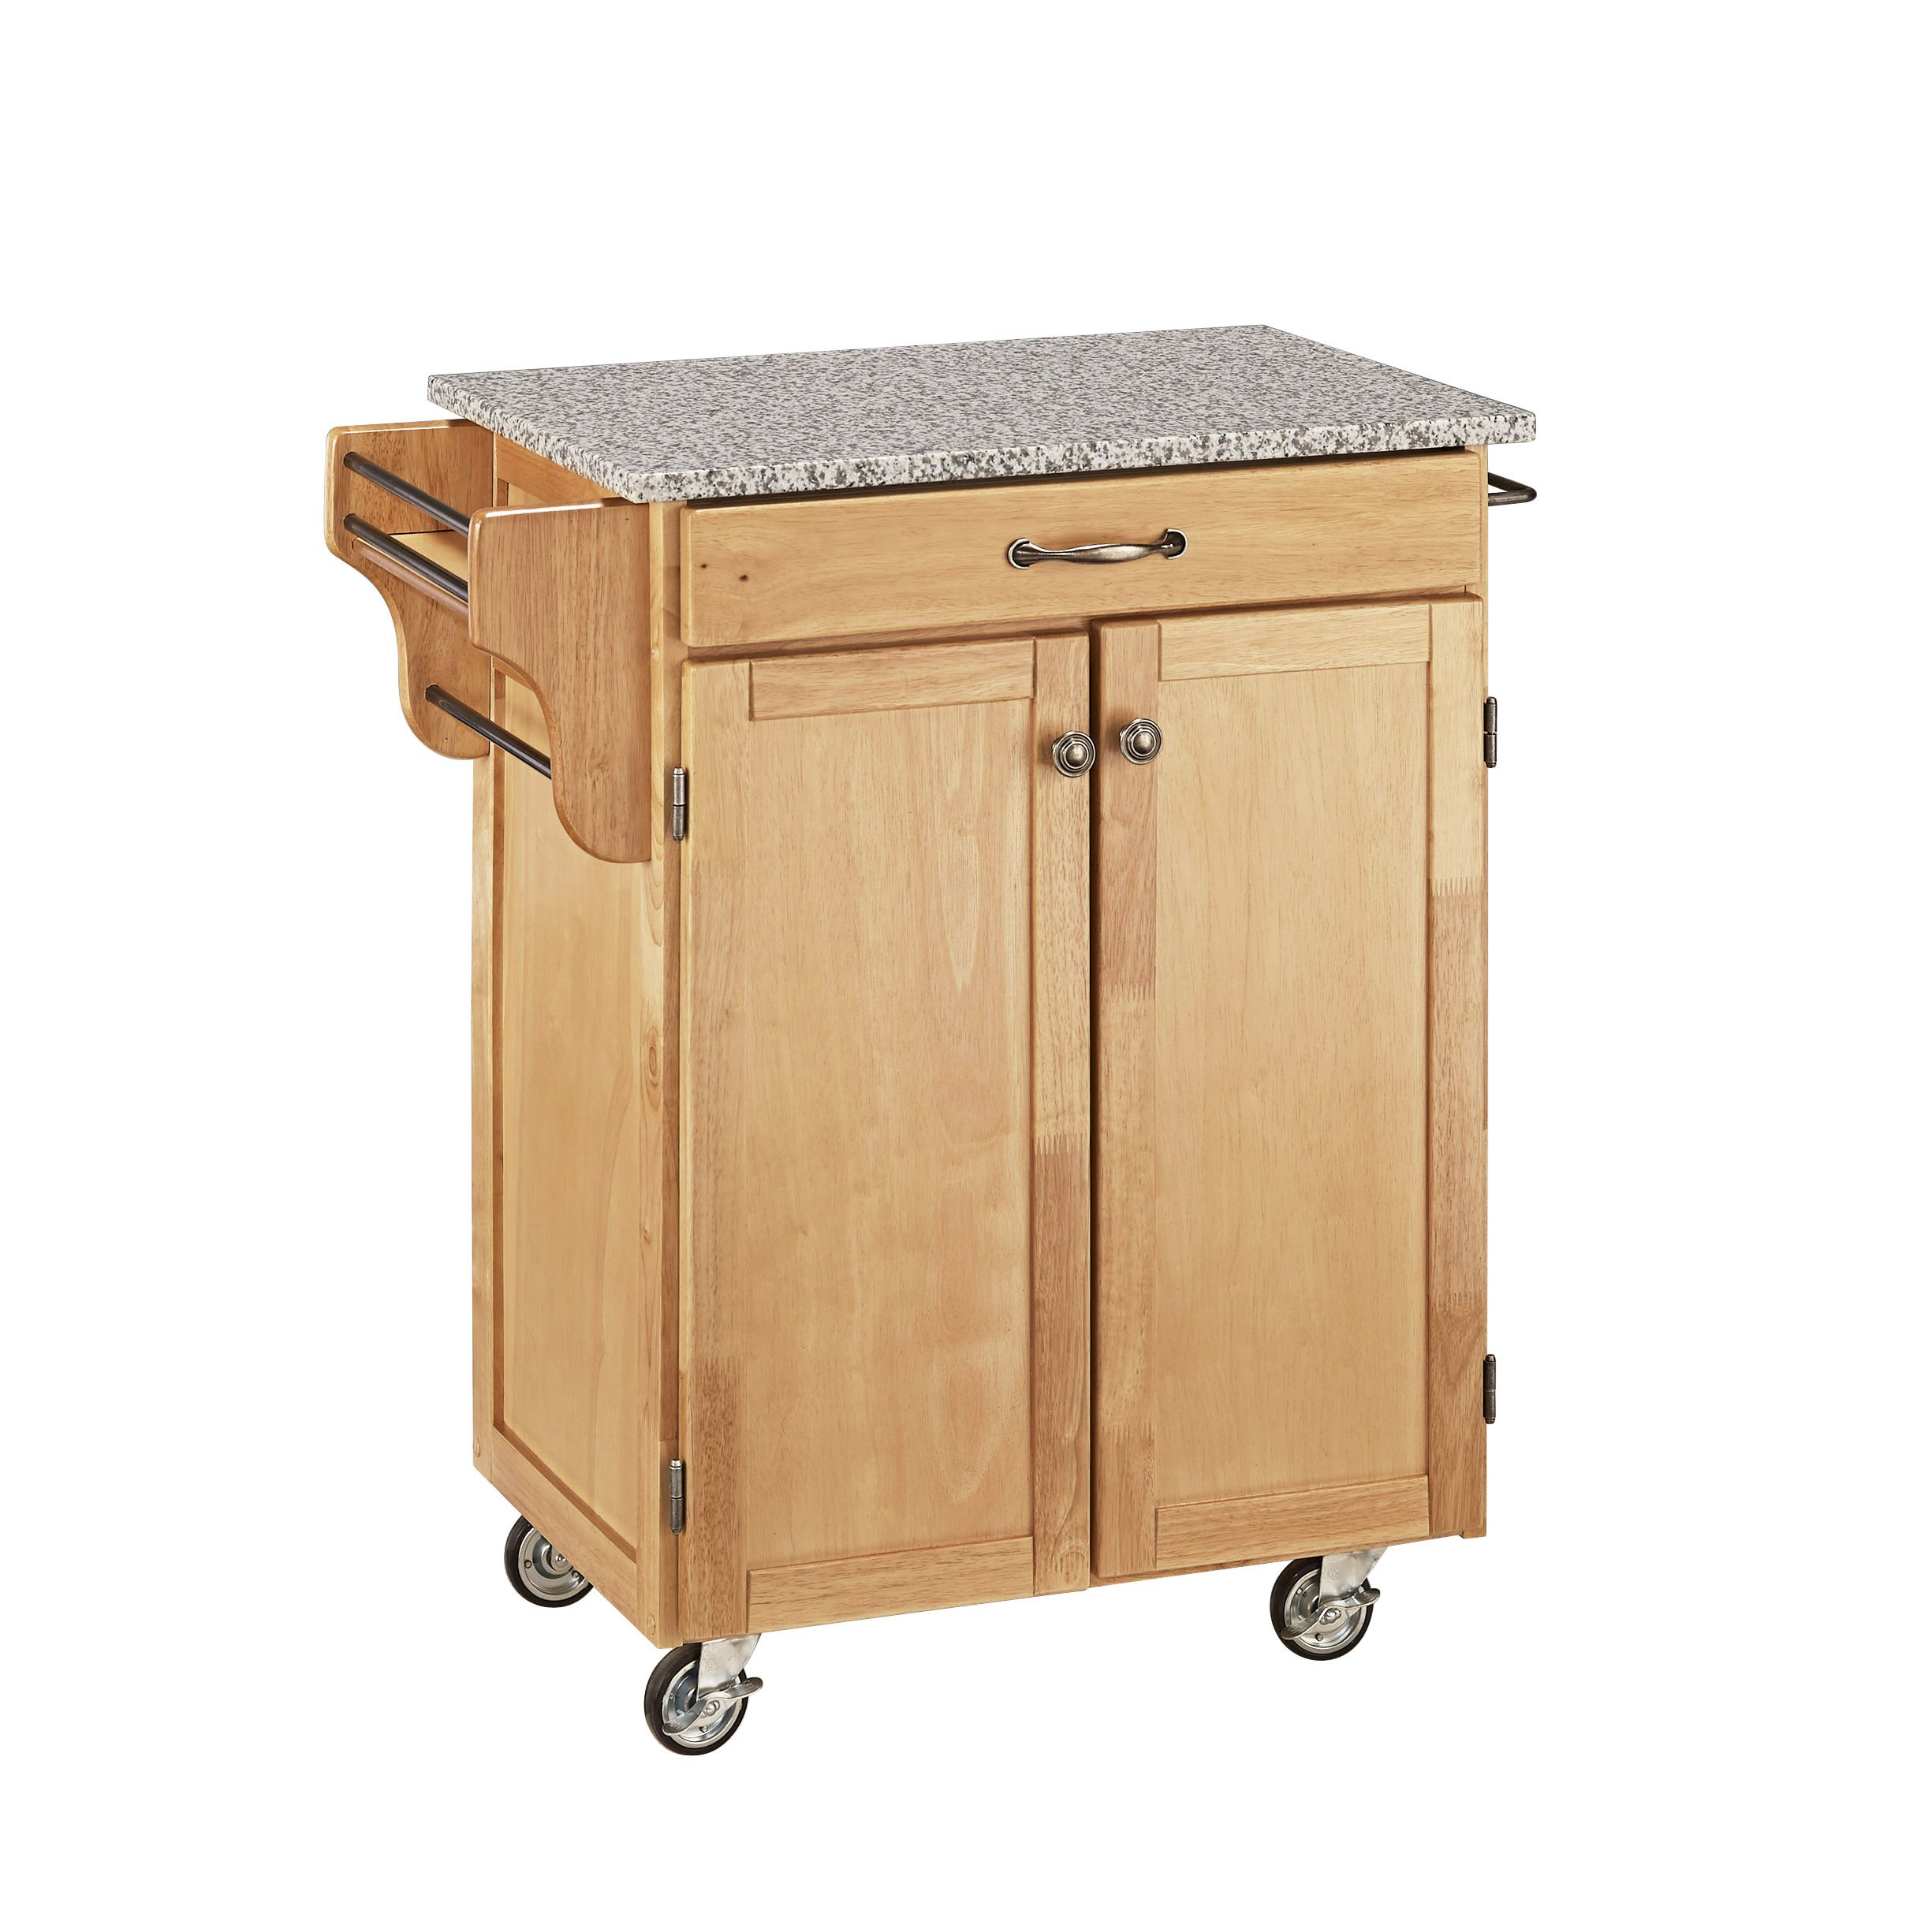 Home Styles 9001-0013 Create-a-Cart 9001 Series Cuisine Cart with Salt and Pepper Granite Top, Natural, 32-1/2-Inch by Home Styles